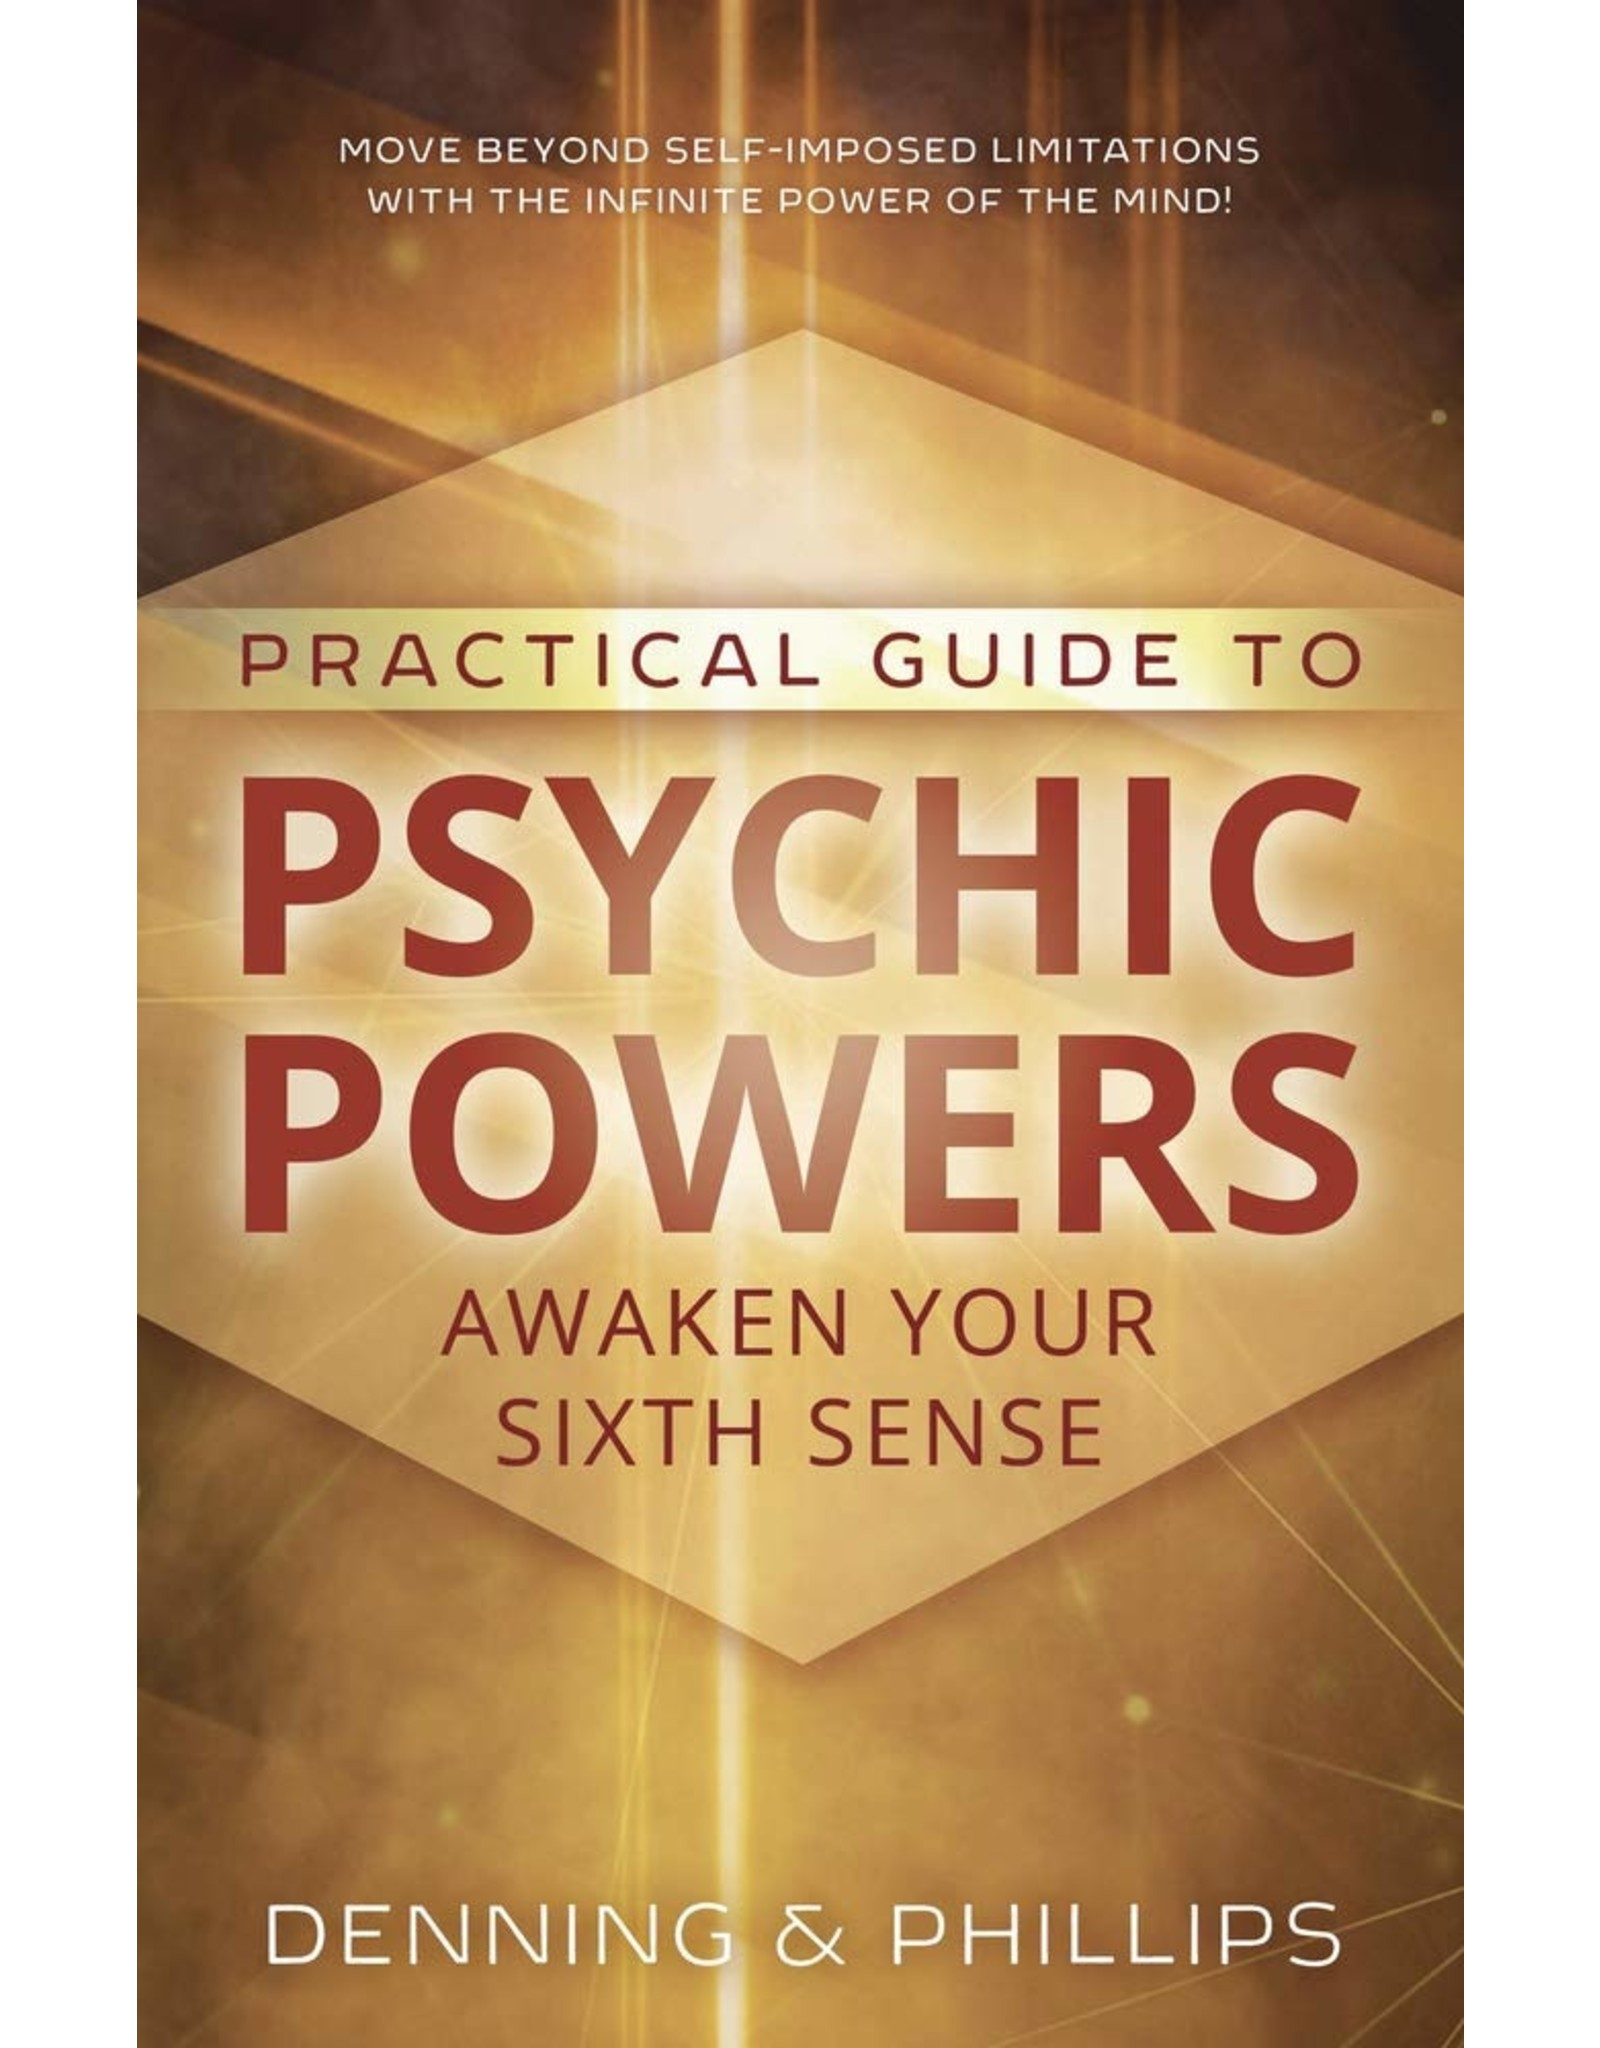 Practical Guide to Psychic Powers